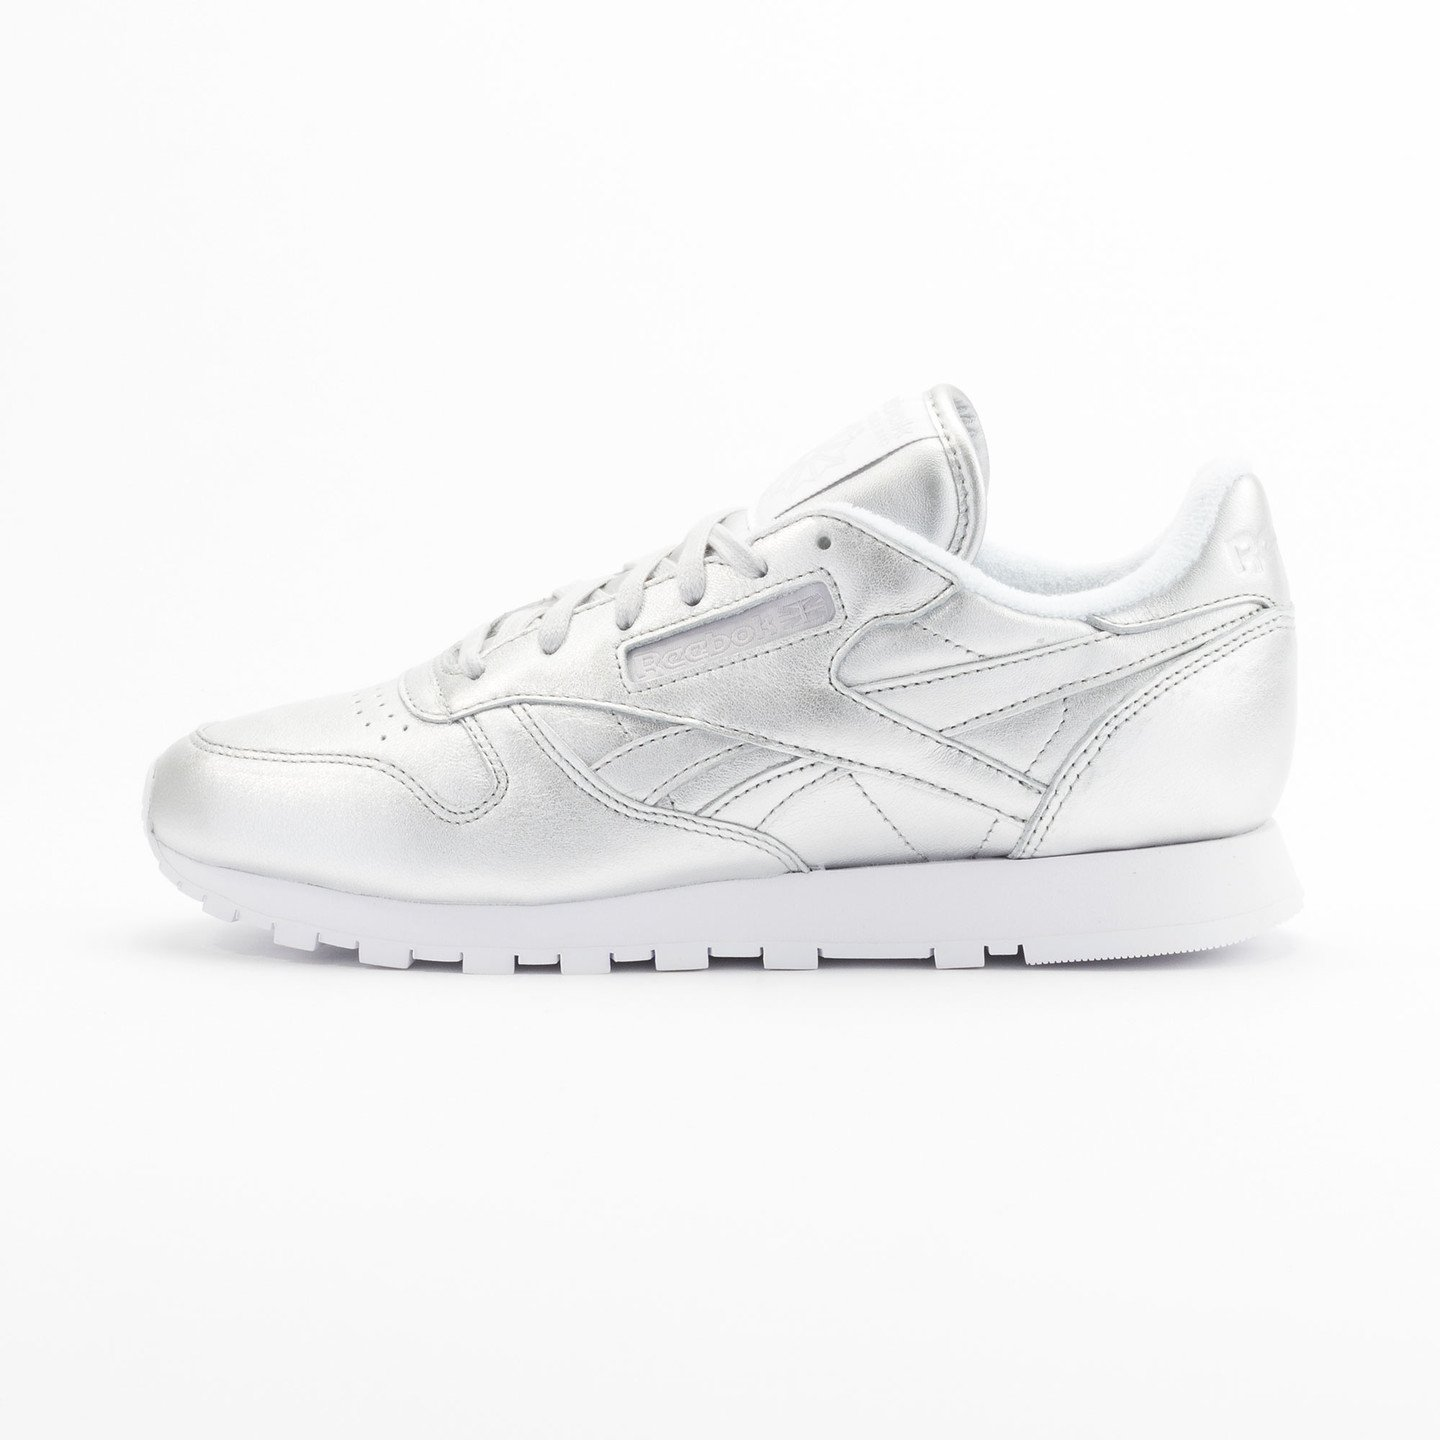 Reebok Classic Leather Spirit Presence Silver / White V62700-40